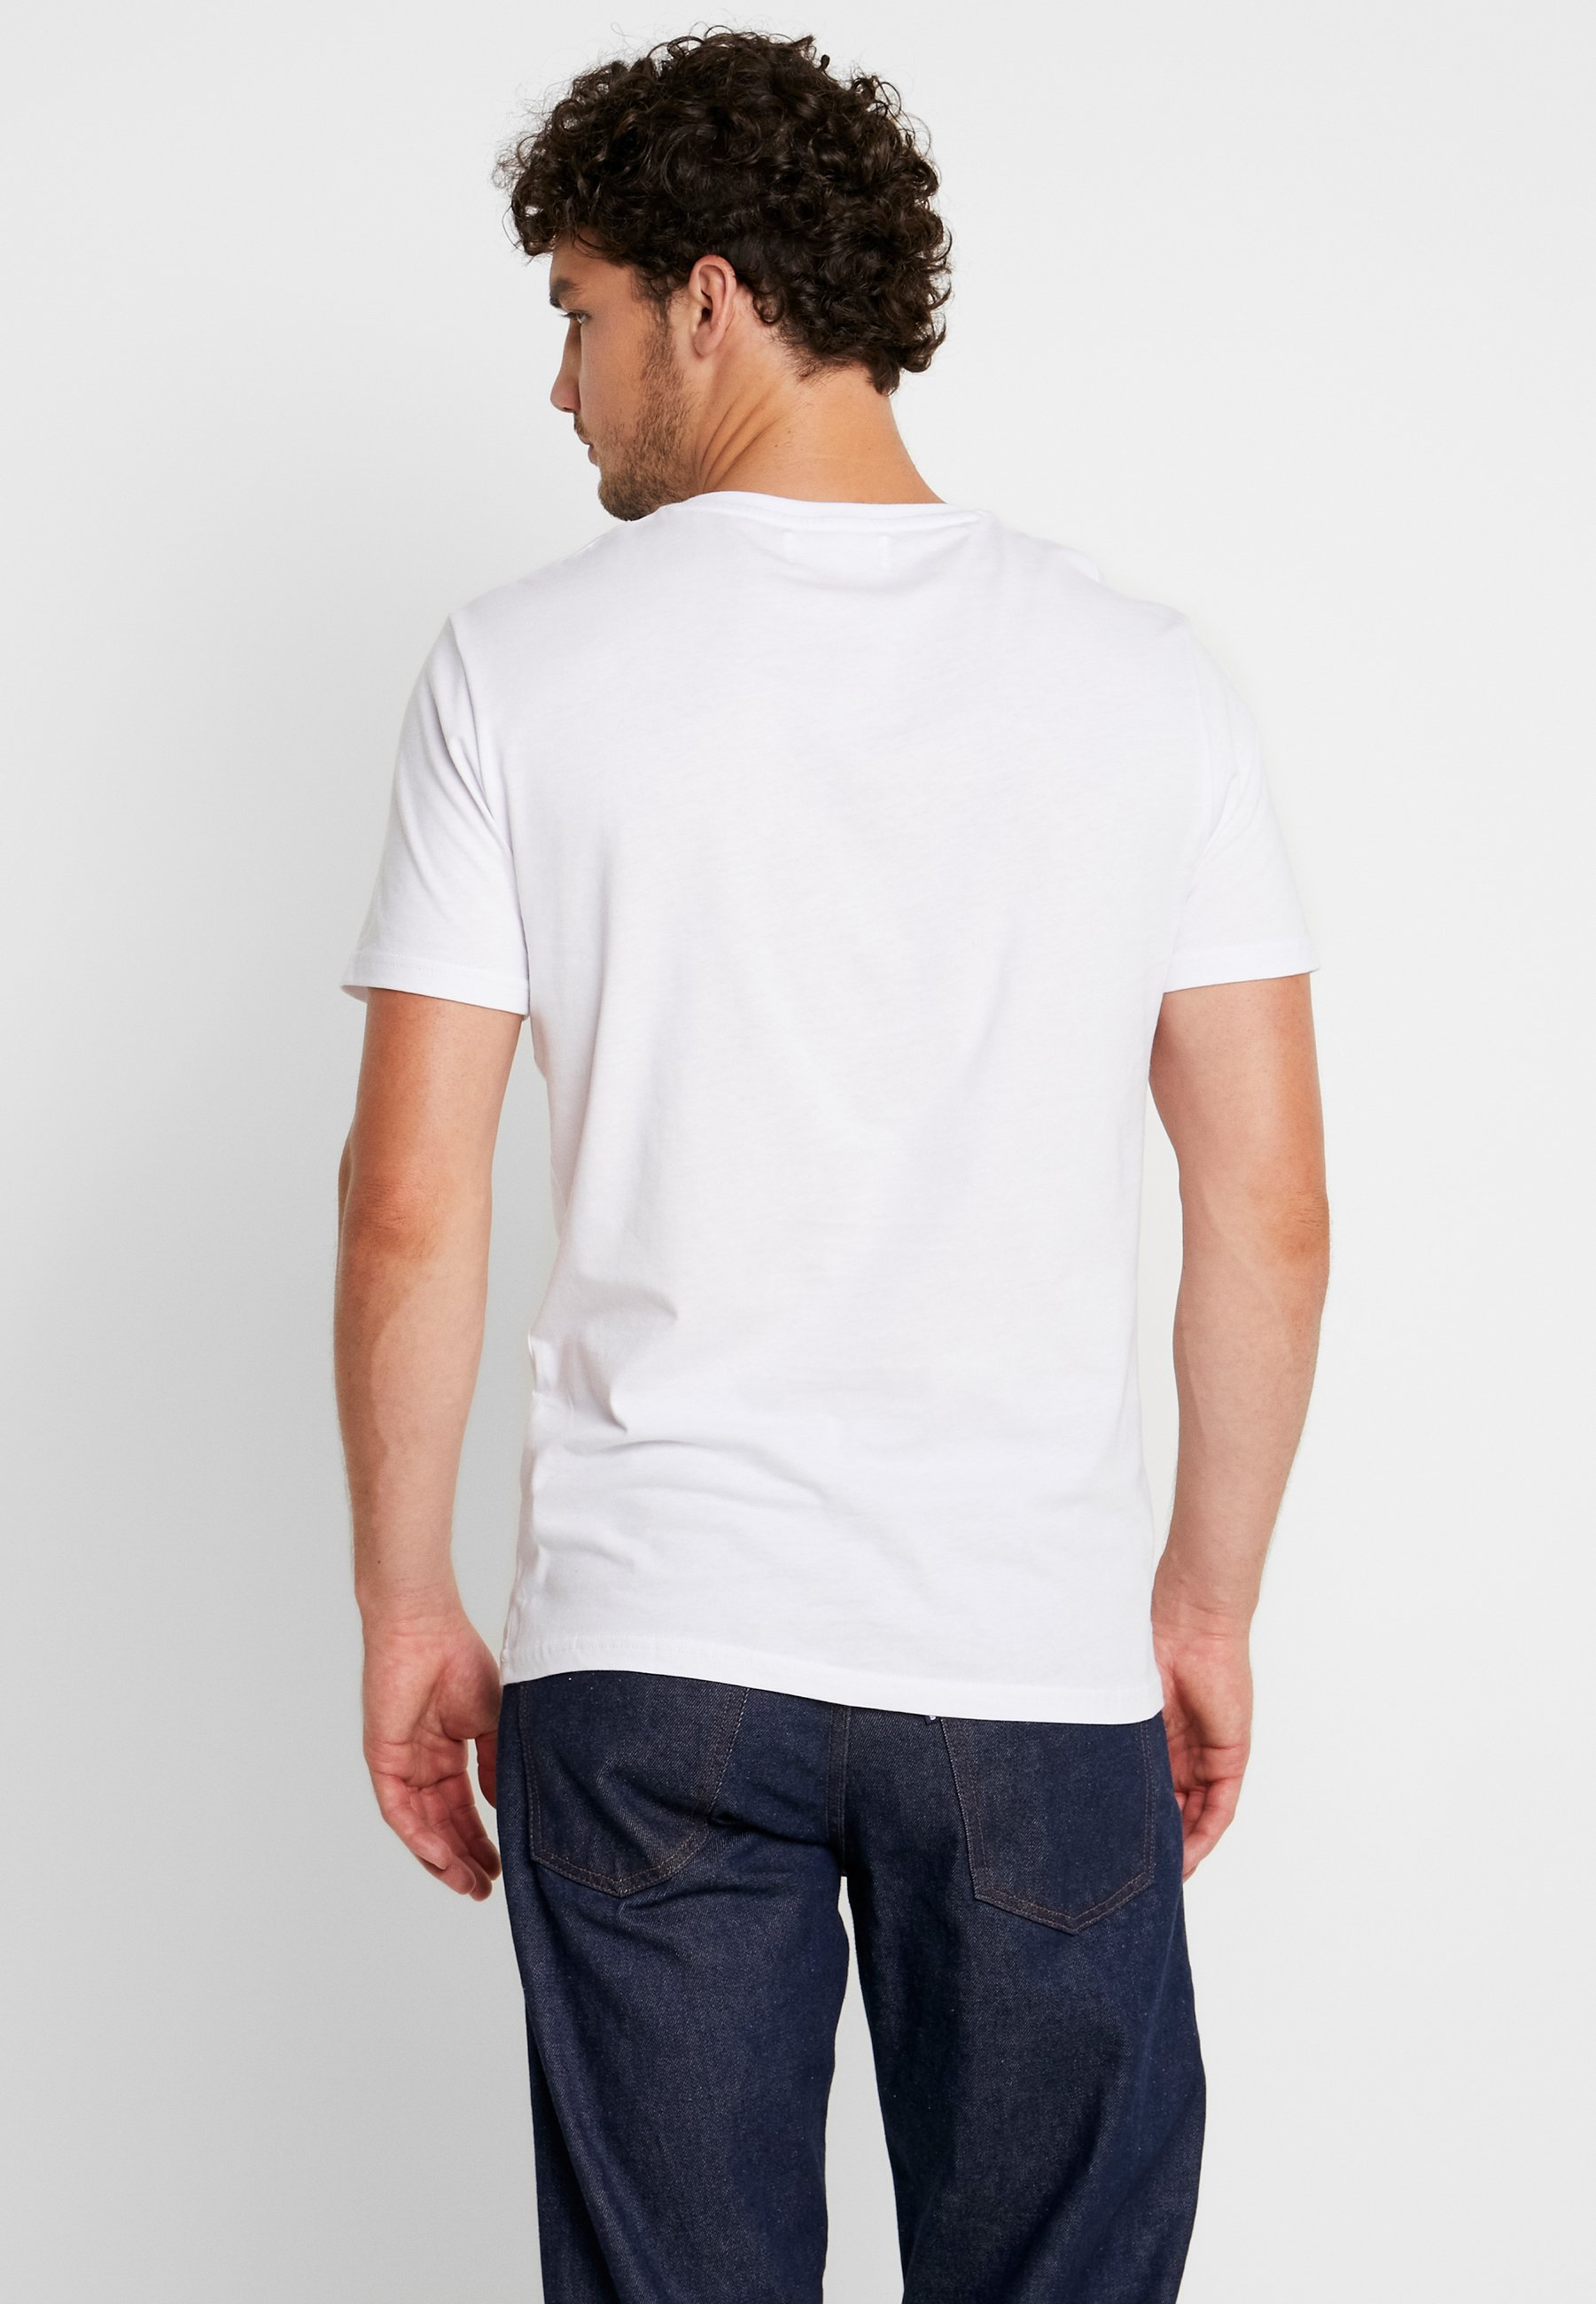 Blue Pier dark One ImpriméWhite shirt T 6bvfyY7g